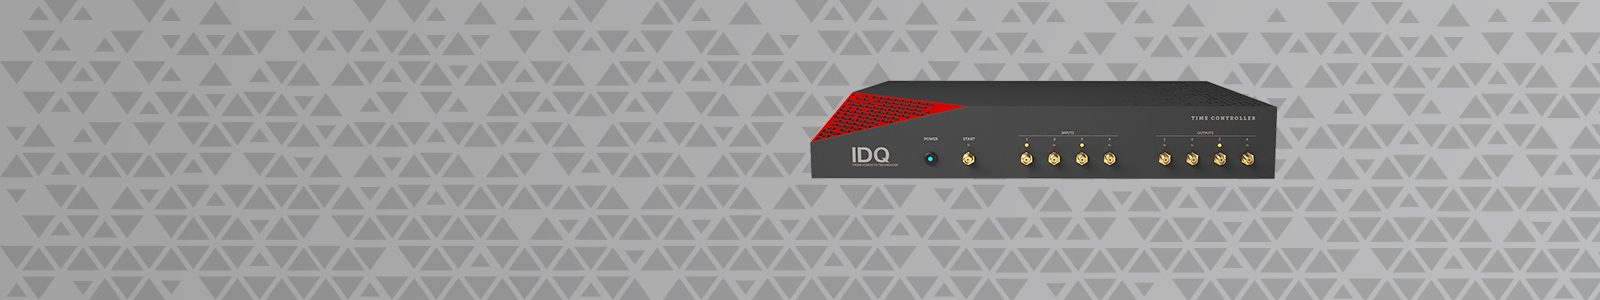 ID900 website banner